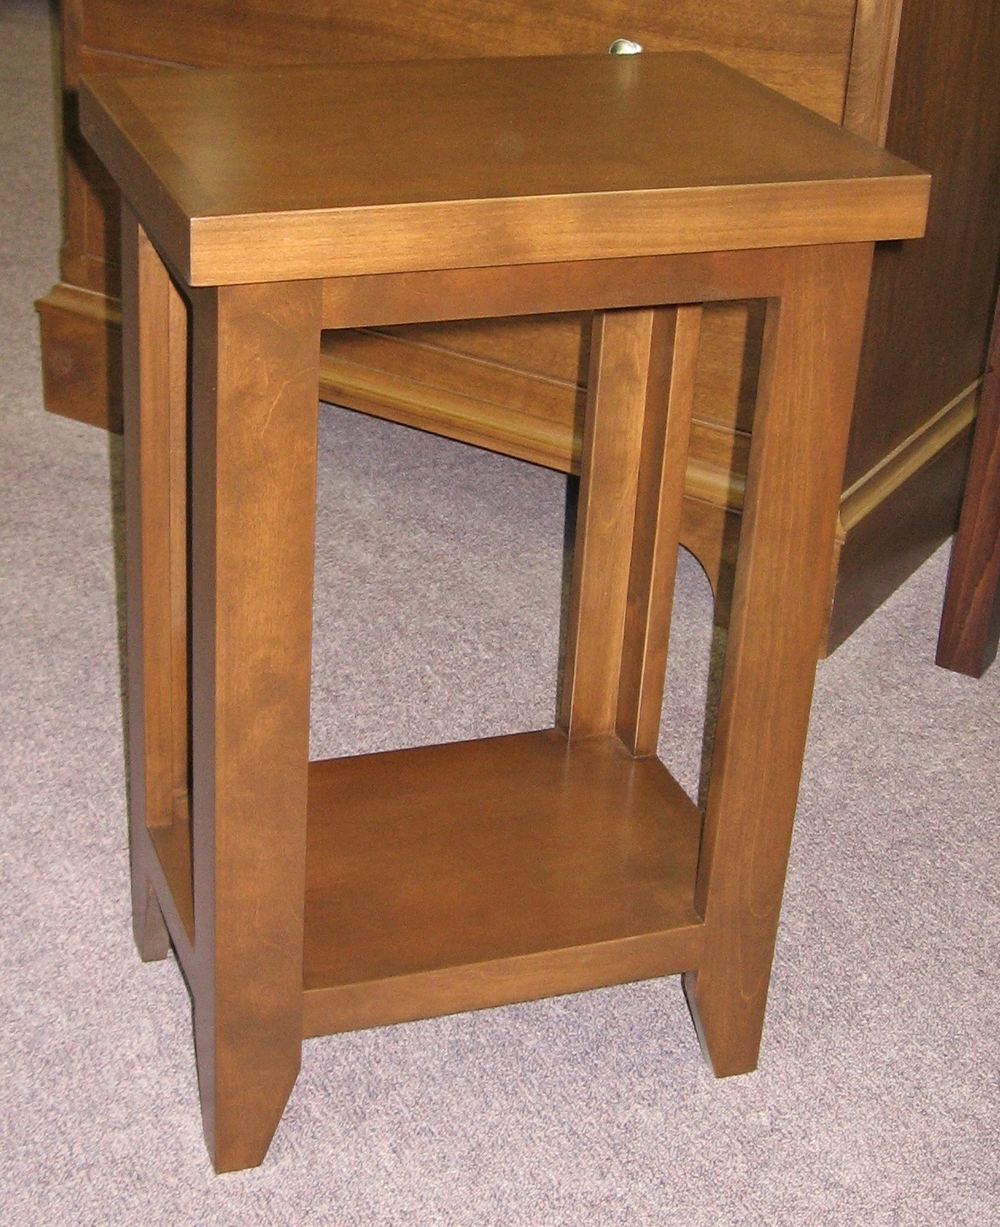 arts-and-crafts-style-accent-table.JPG